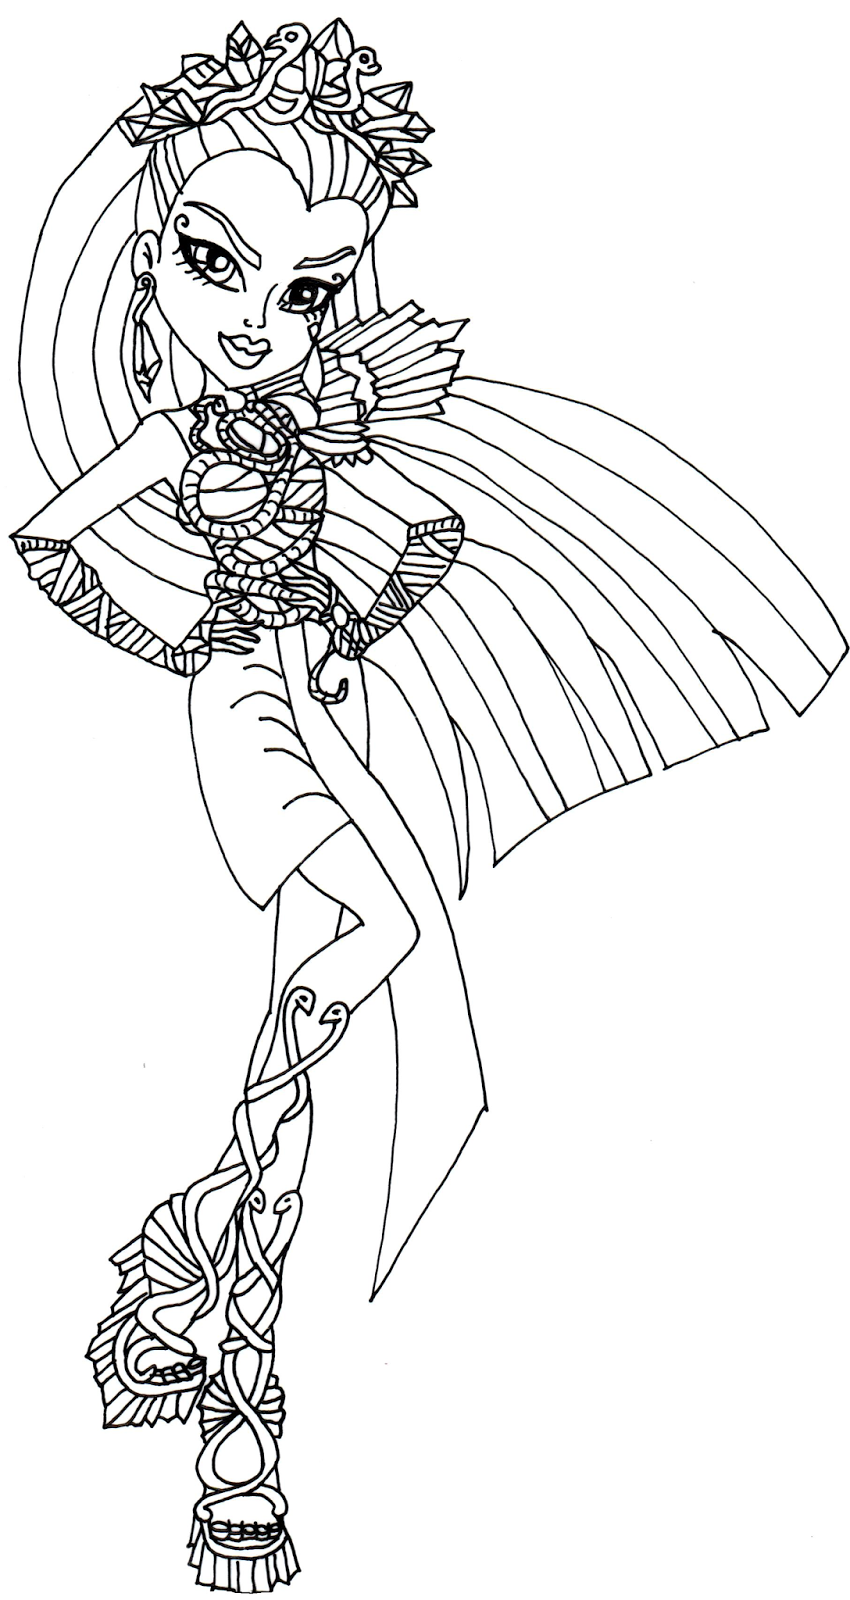 Free printable monster high coloring pages nefera de nile for Monster high printables coloring pages